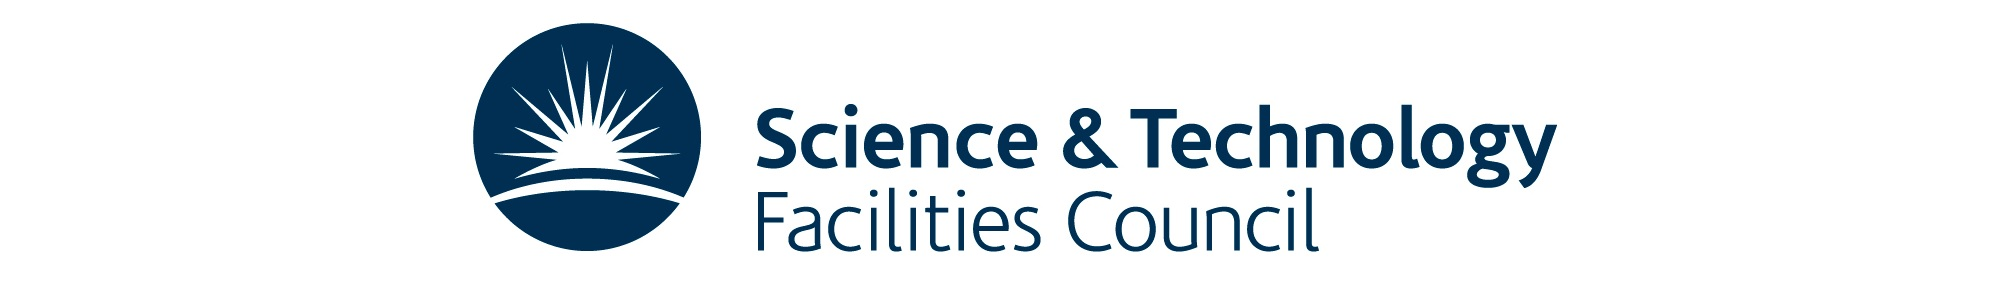 The Science & Technology Facilities Council